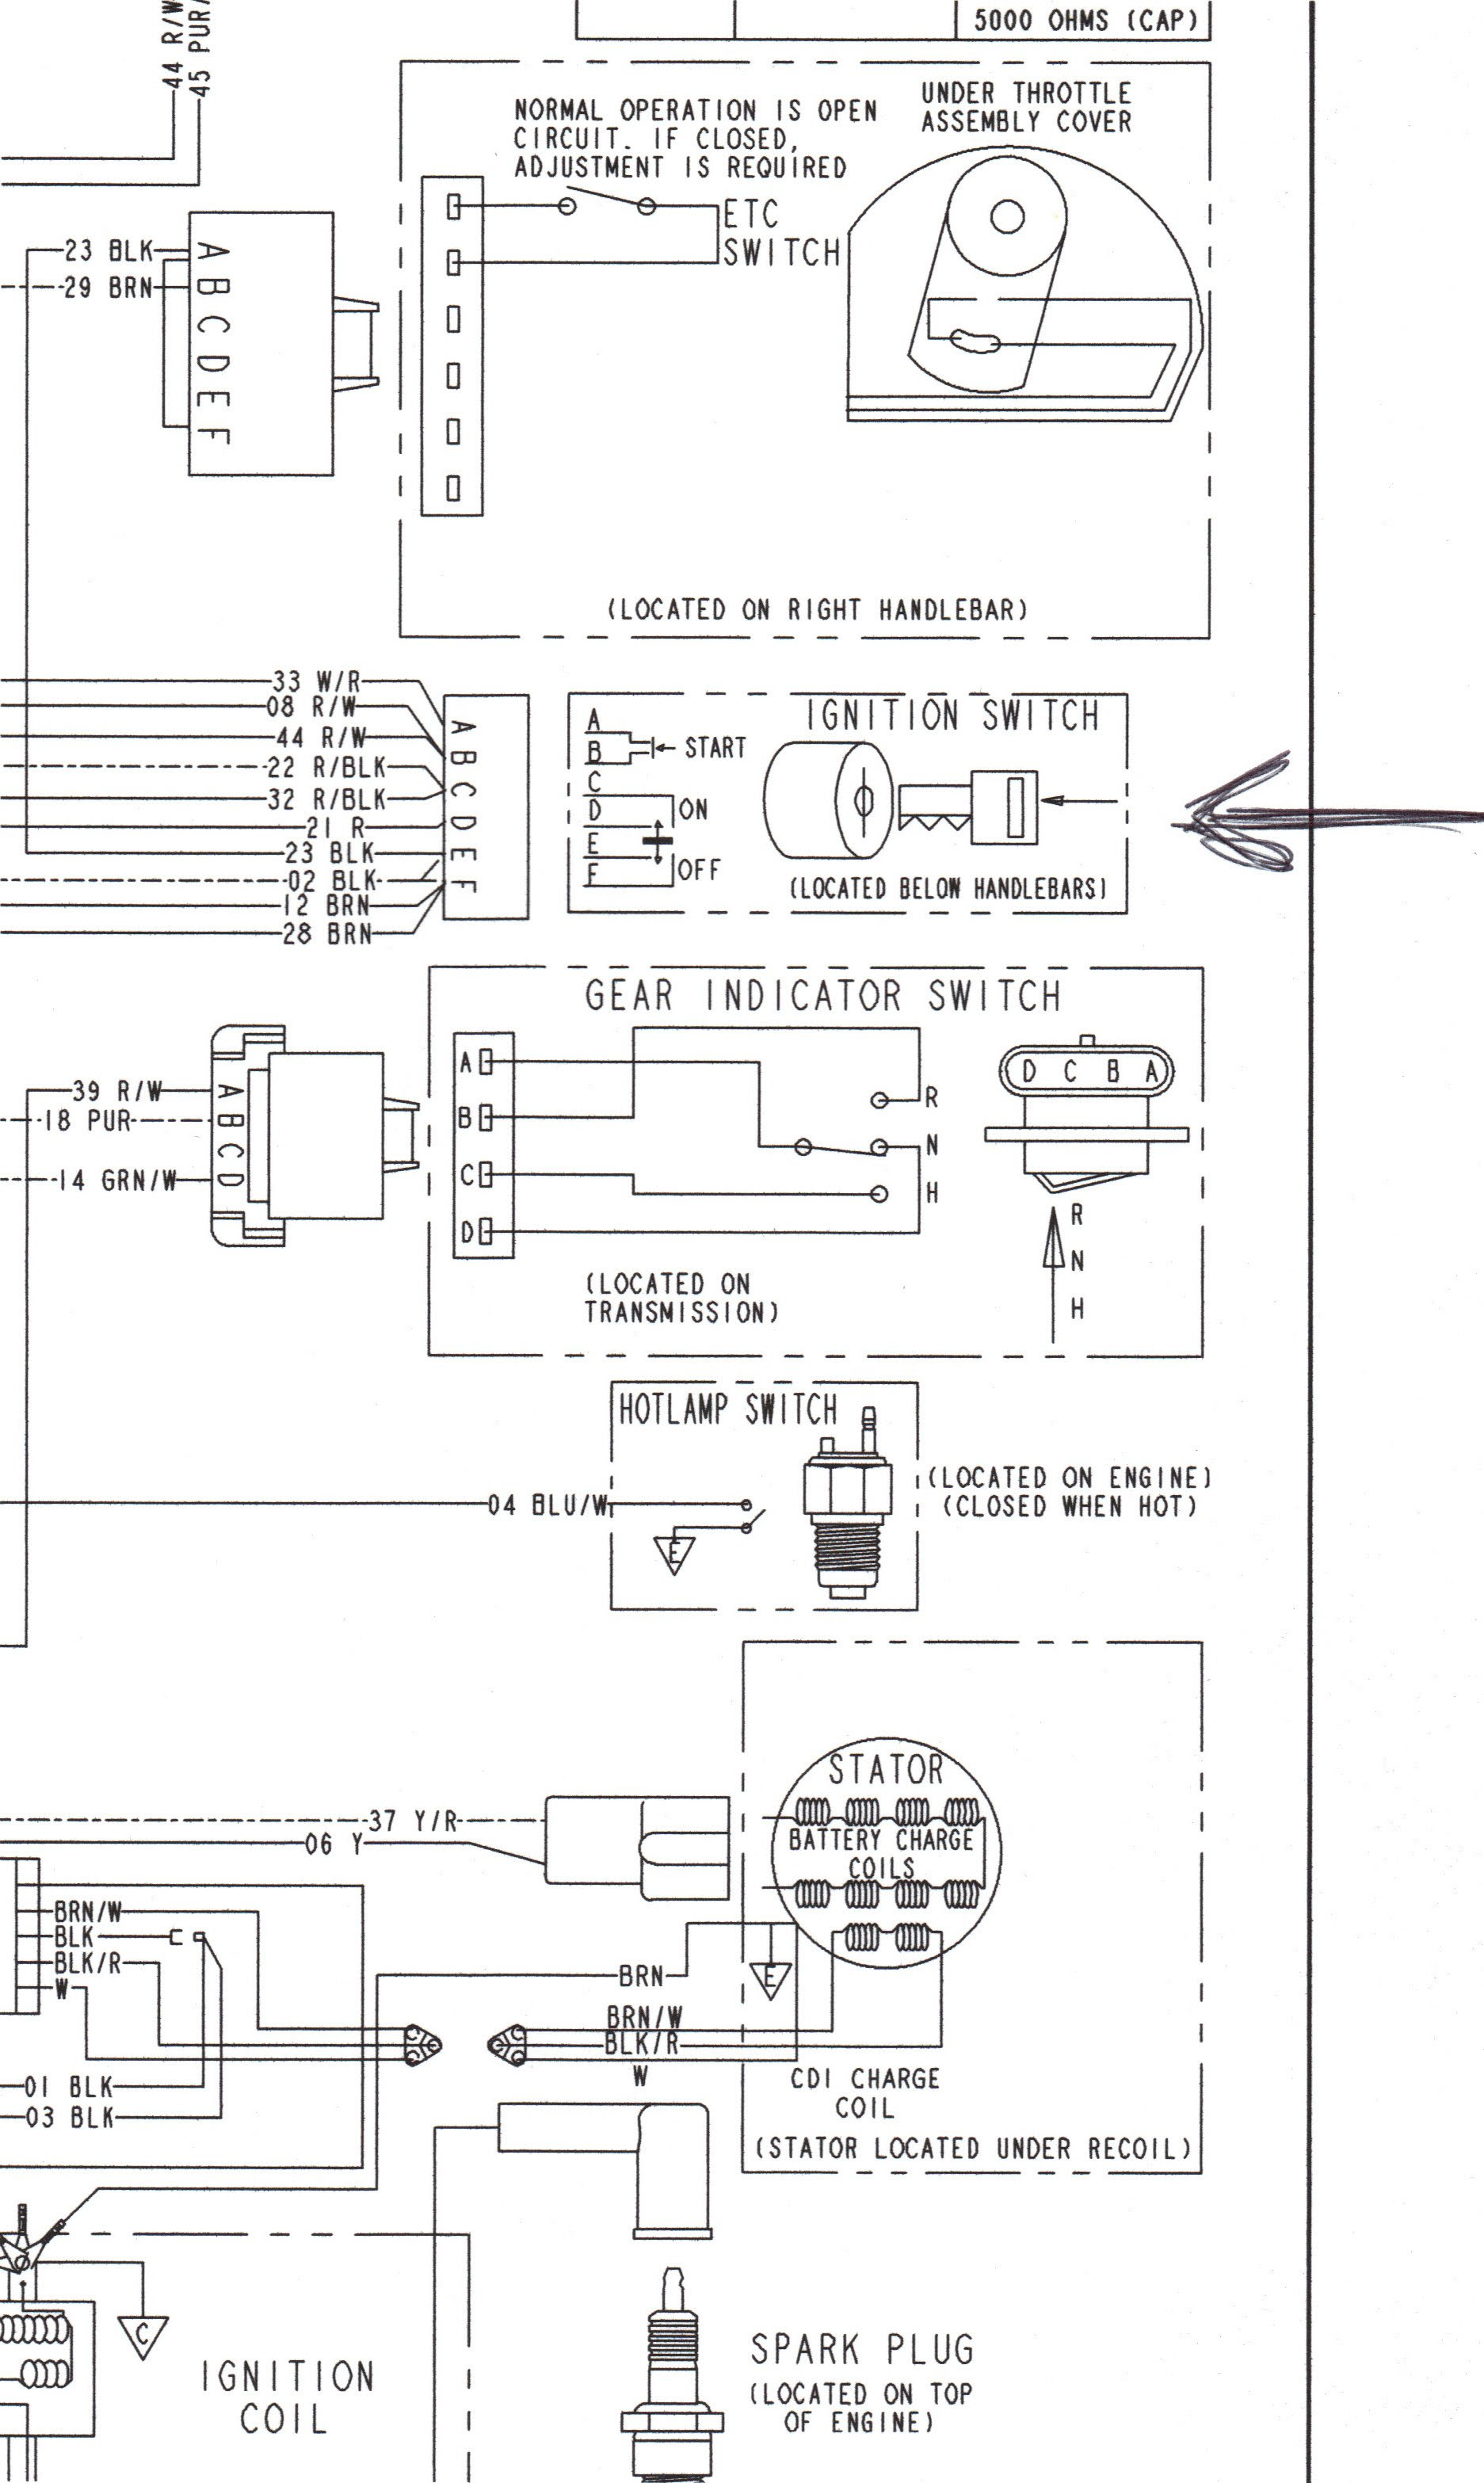 Diagram 1995 Polaris 250 Trail Boss Wiring Diagram Full Version Hd Quality Wiring Diagram Pvdiagramxspain Edizionisavine It